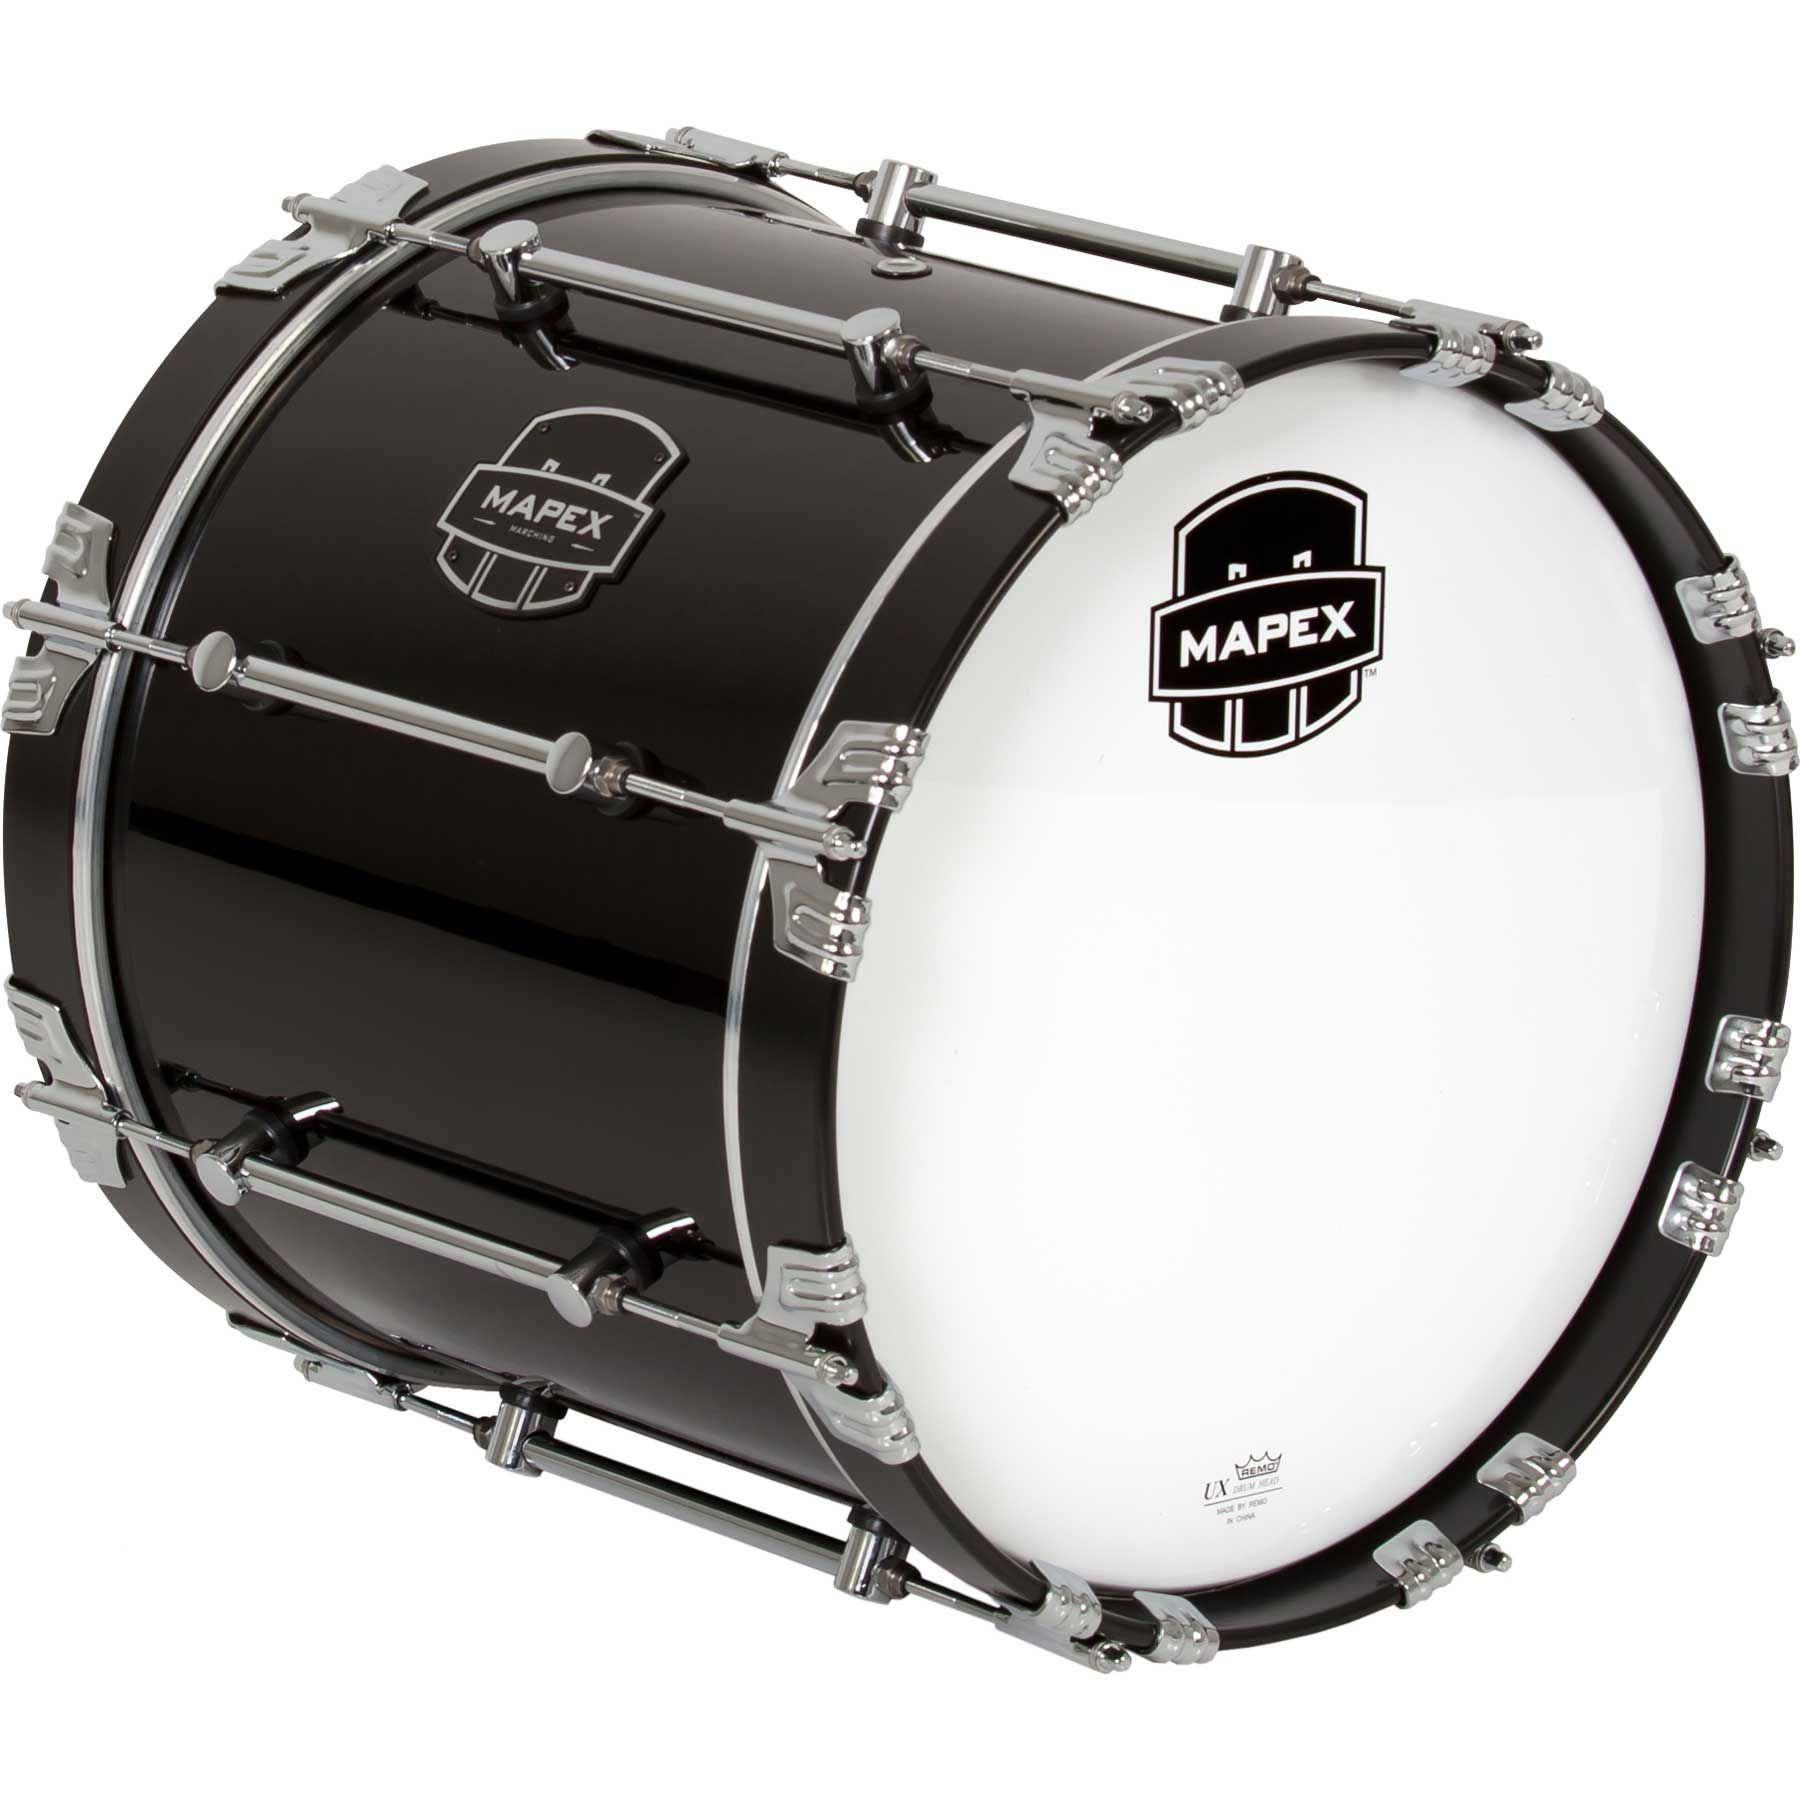 "Mapex 16"" Quantum Marching Bass Drum in Gloss Black"